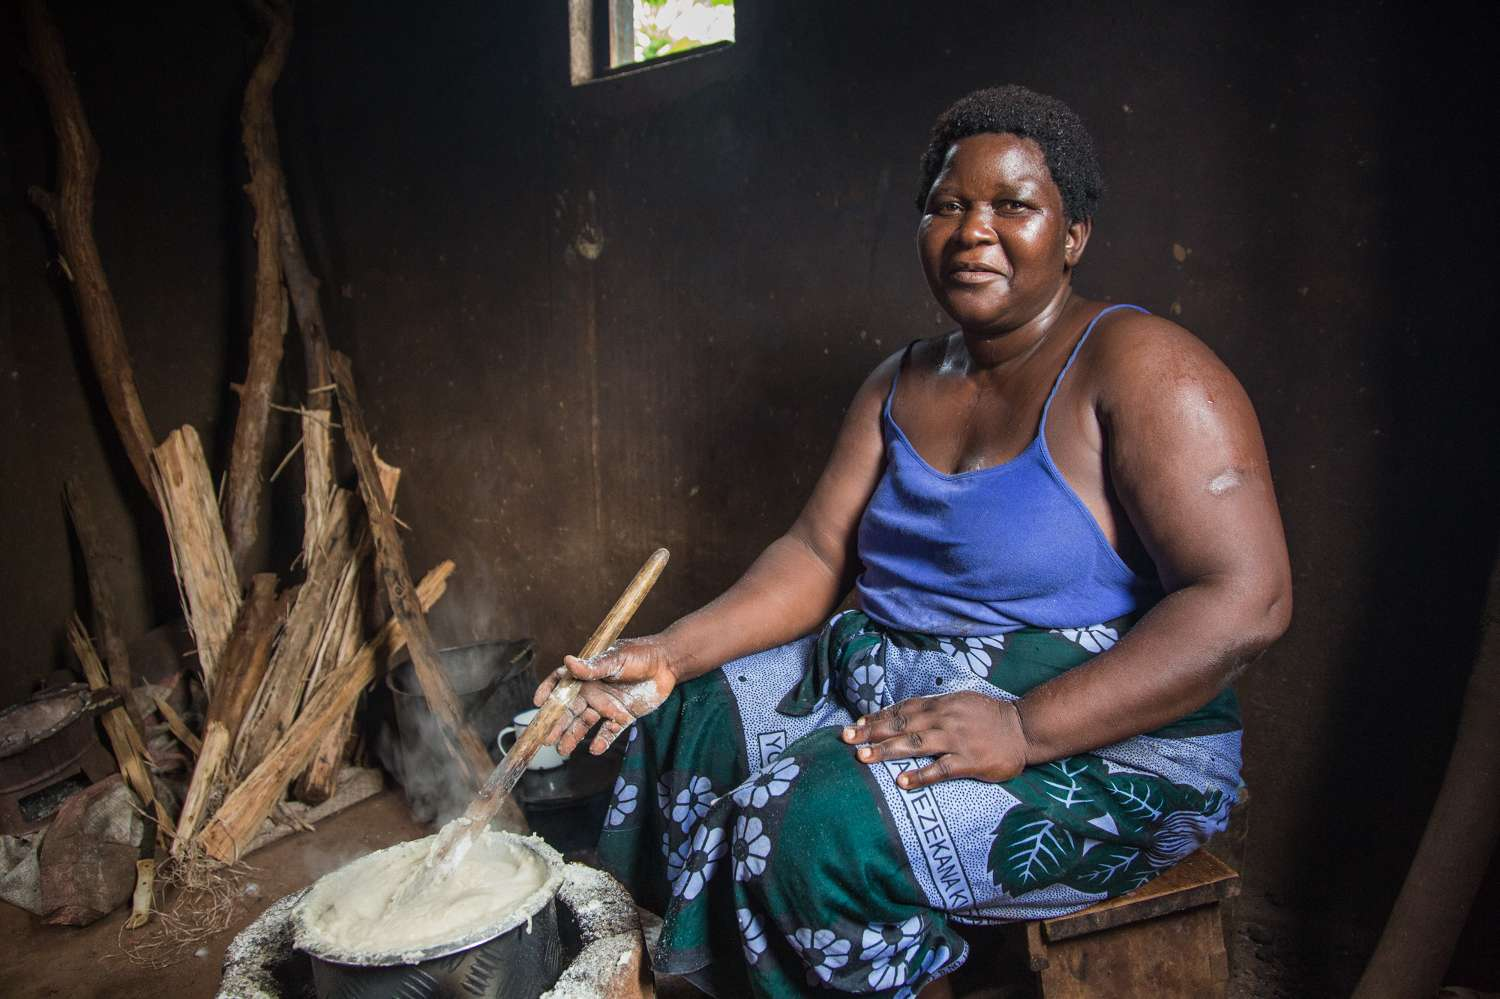 Rose Kandodo, from Nessa near Mulanje, has just finished cooking the staple food Nsima.